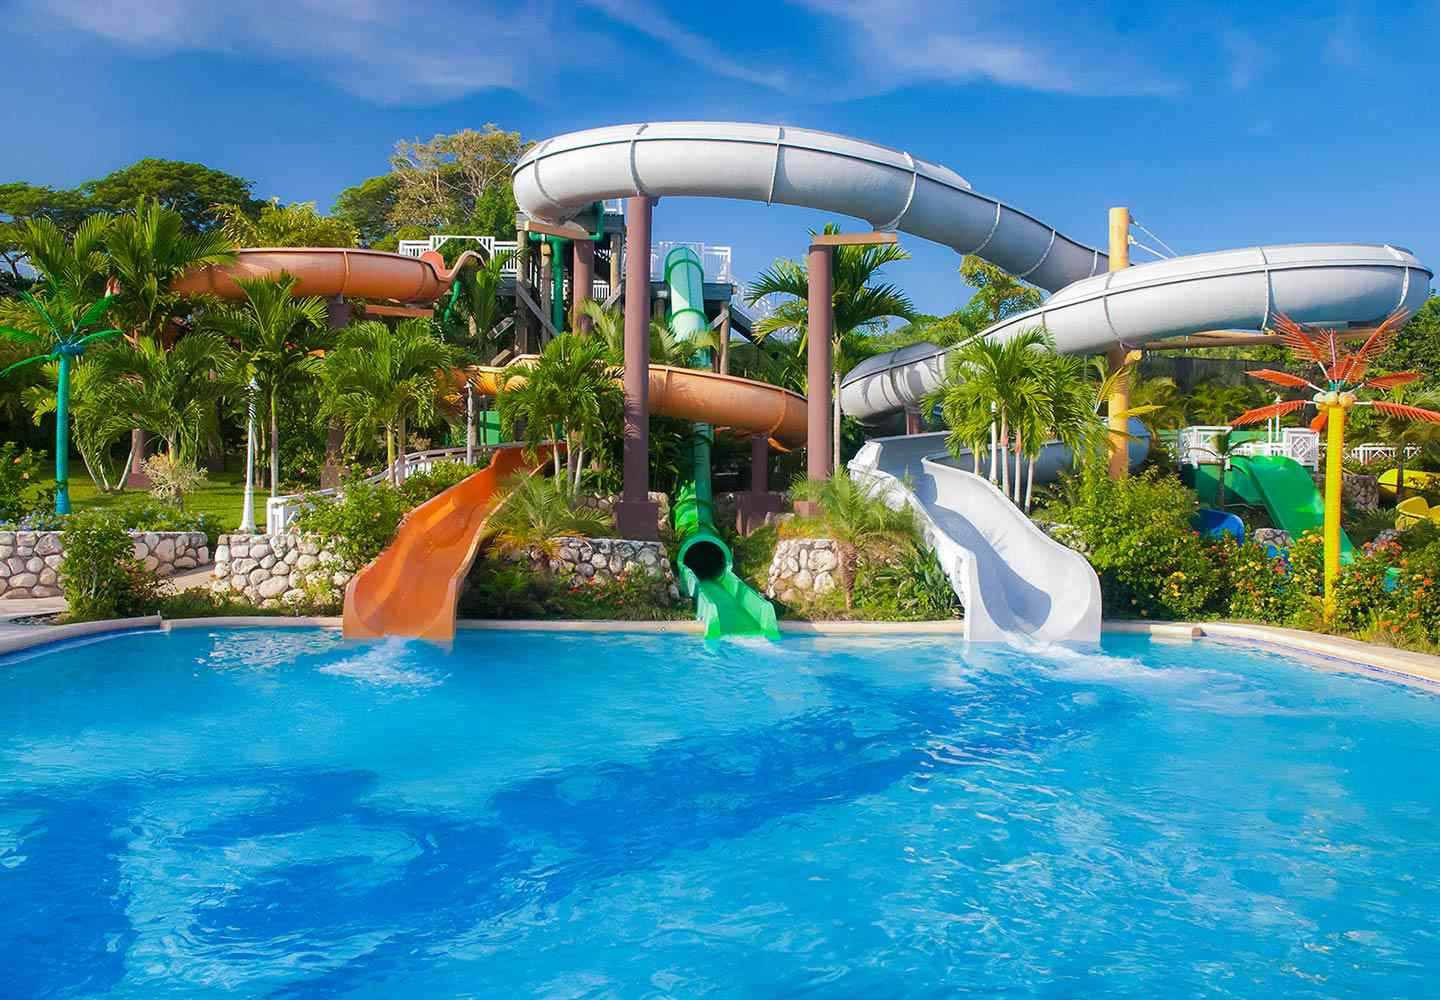 Three waterslides emptying into a pool